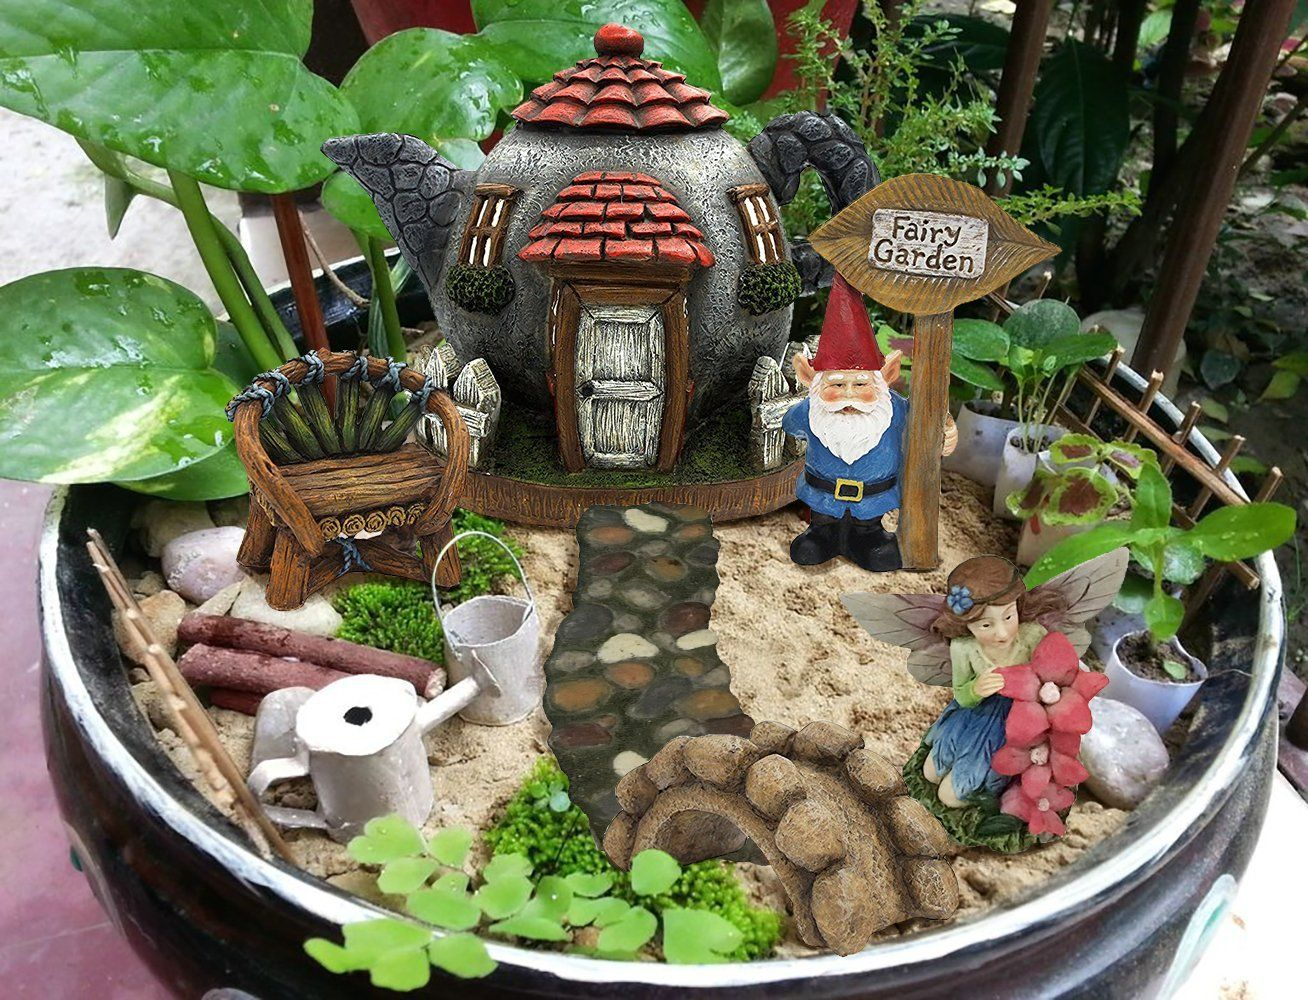 Fairy Garden Kit Gnome Village Fairy Garden Diy Fairy Garden Kit Fairy Garden